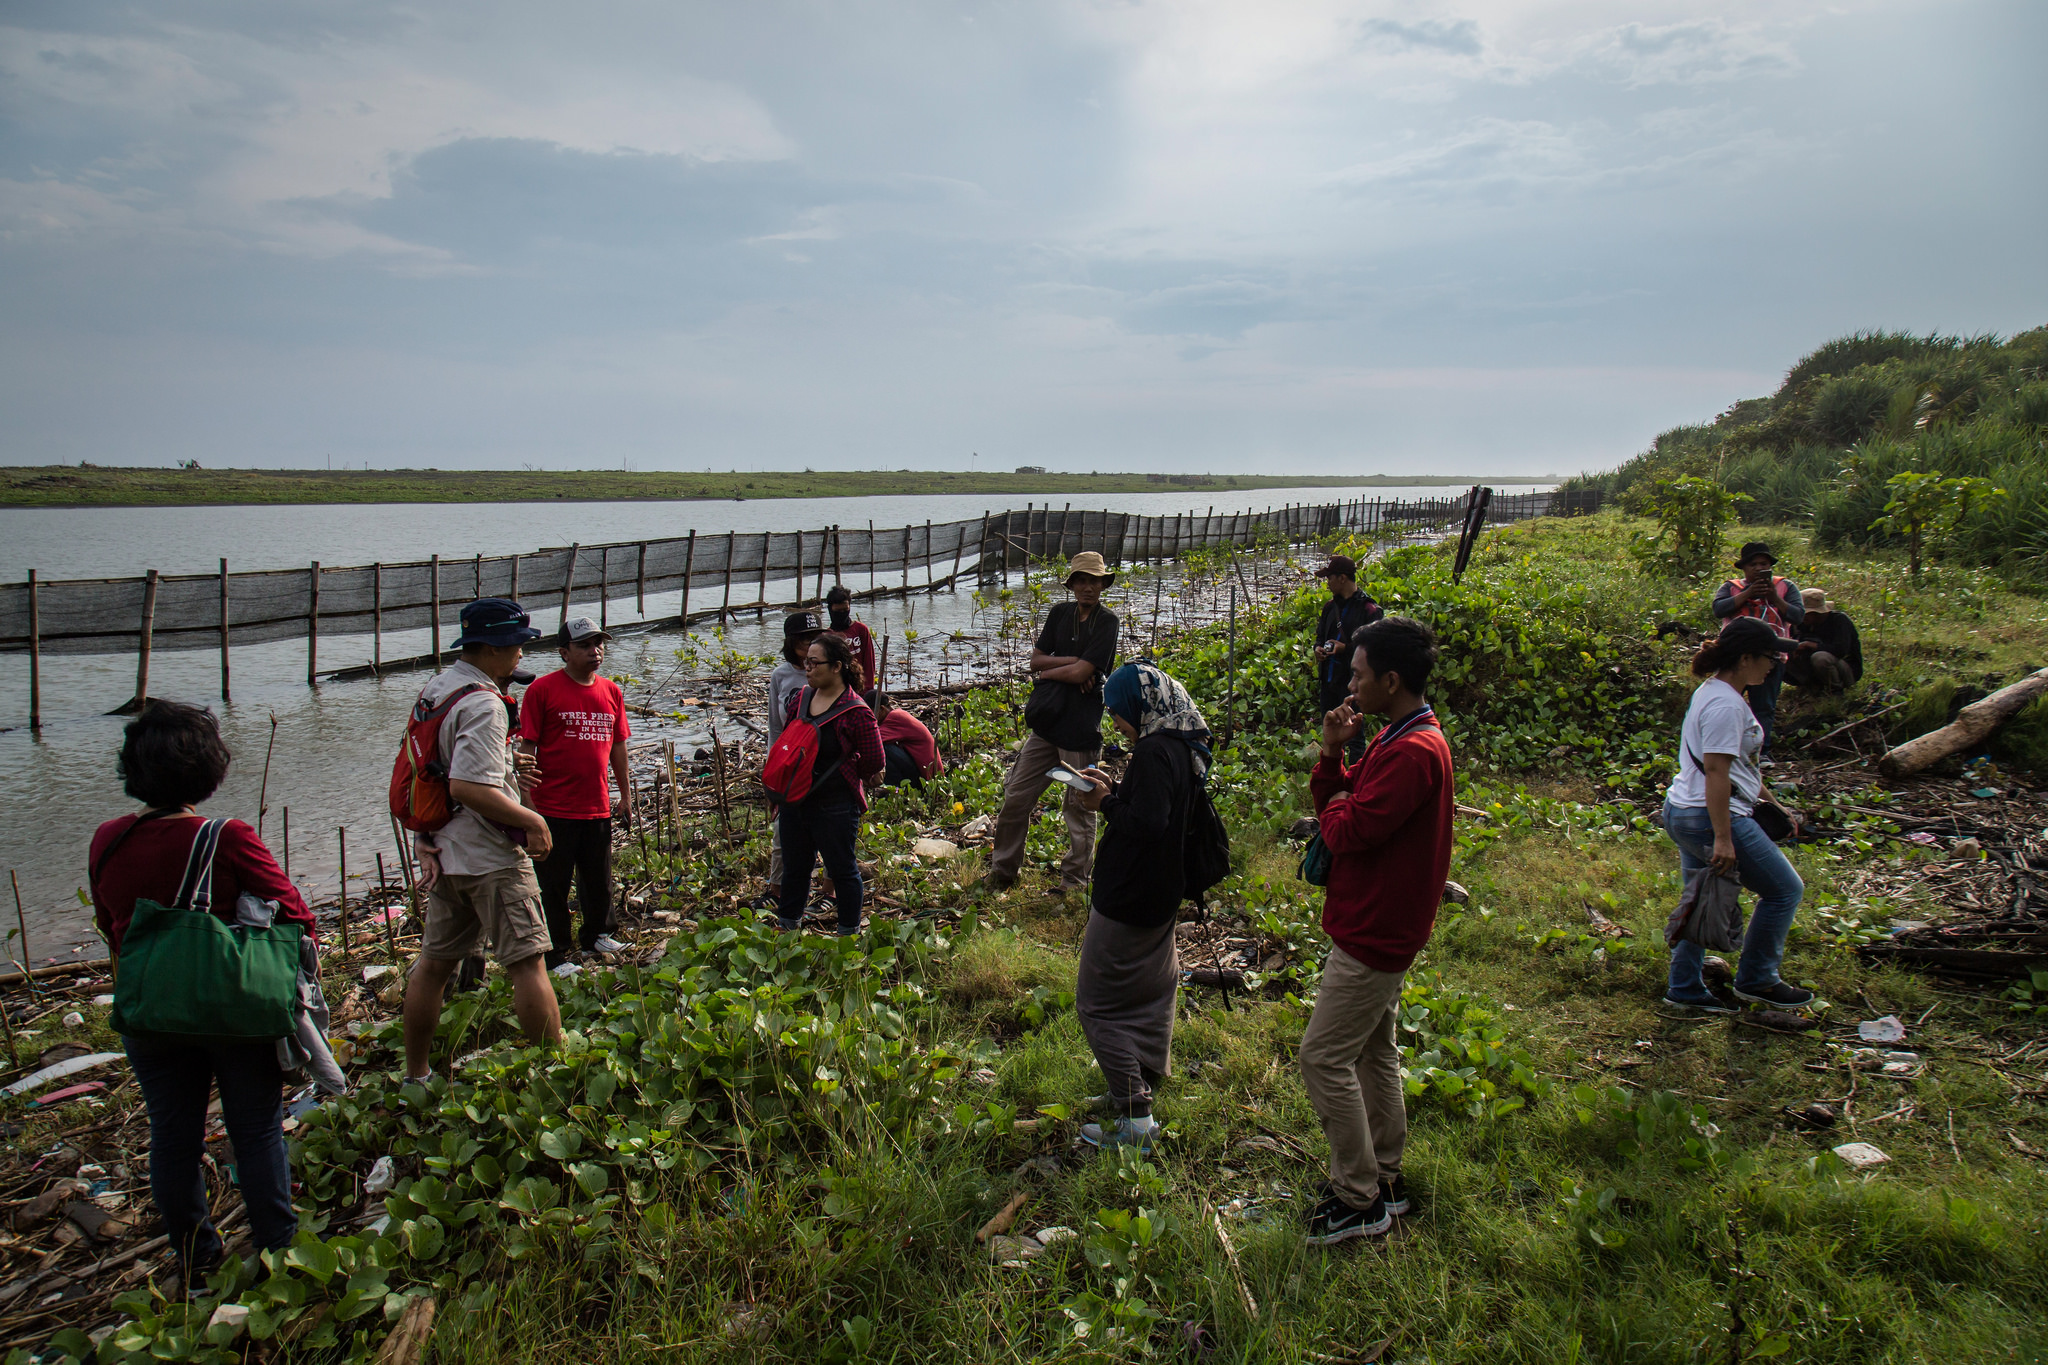 From the soil to the law, climate change efforts in Indonesia